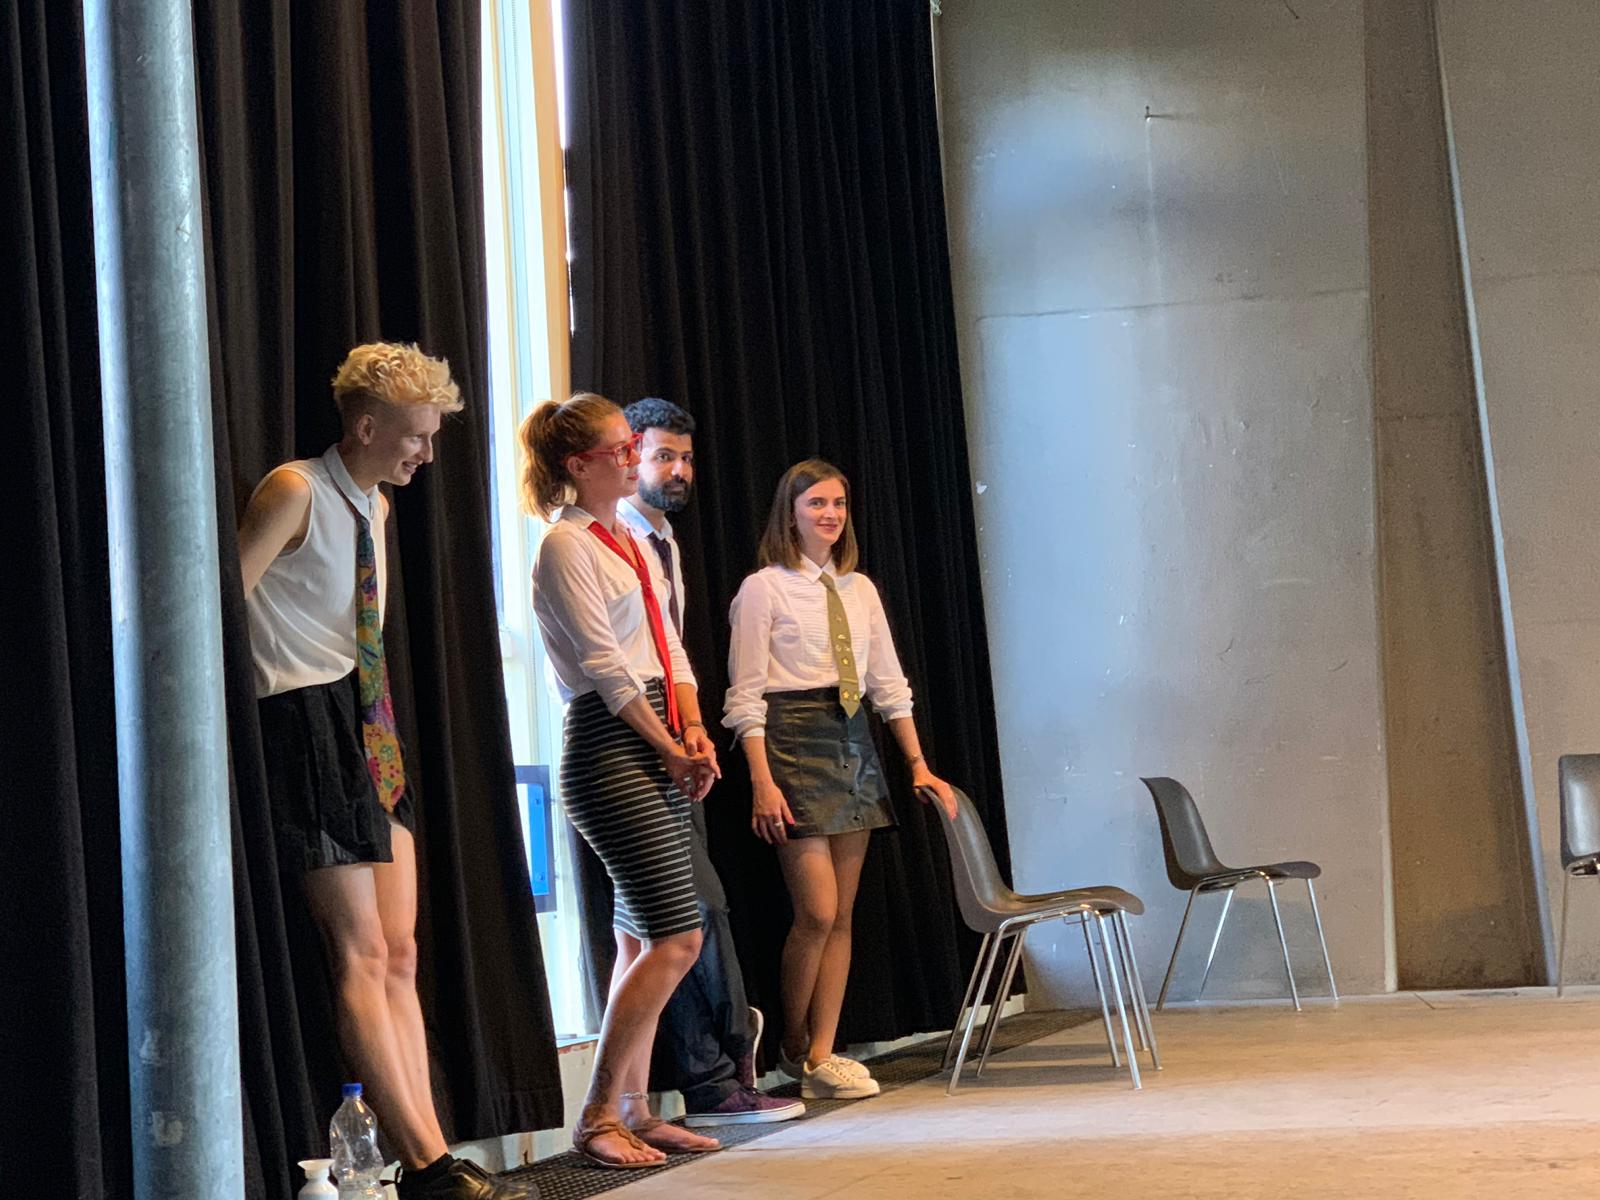 """From the show """"the magic school"""". Four actors stand next to the stage, wearing a white shirt and tie, with their back against a window, hidden by a black curtain"""